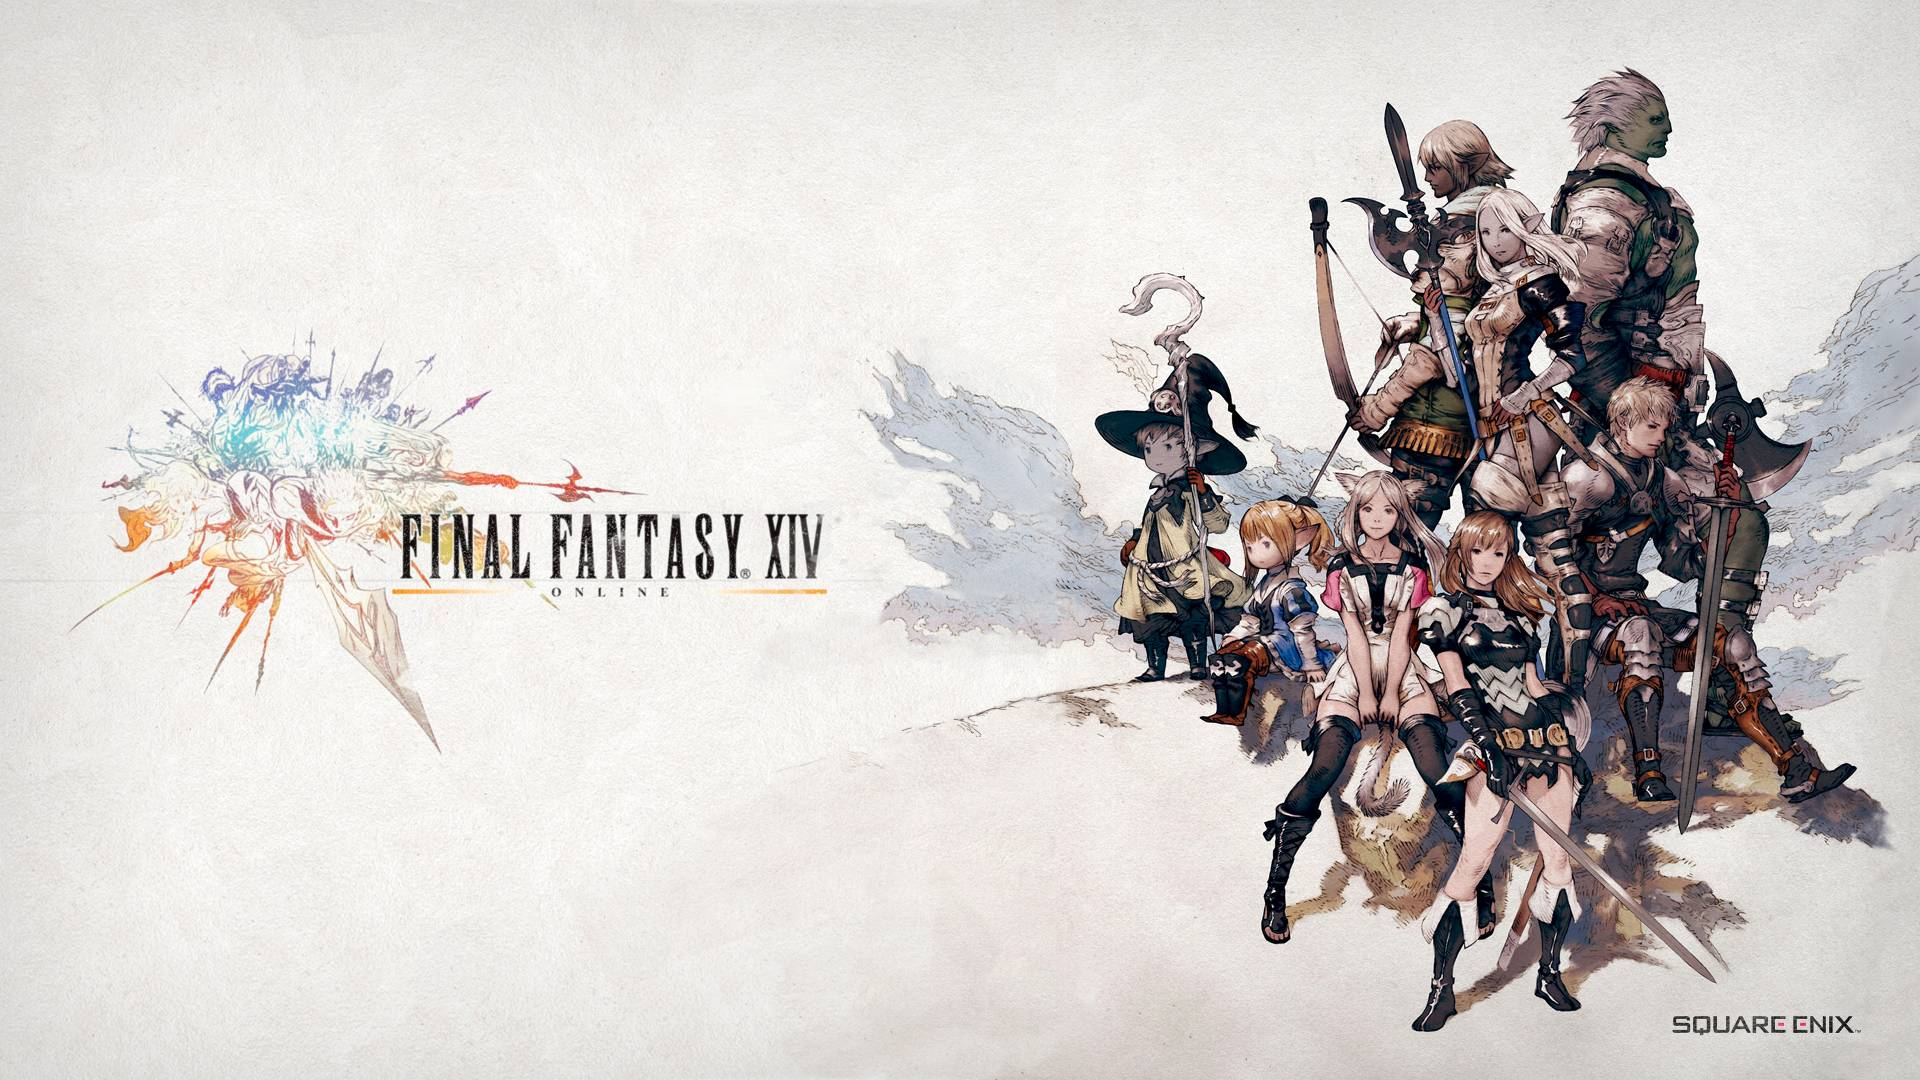 Amazing Final Fantasy XIV Pictures & Backgrounds